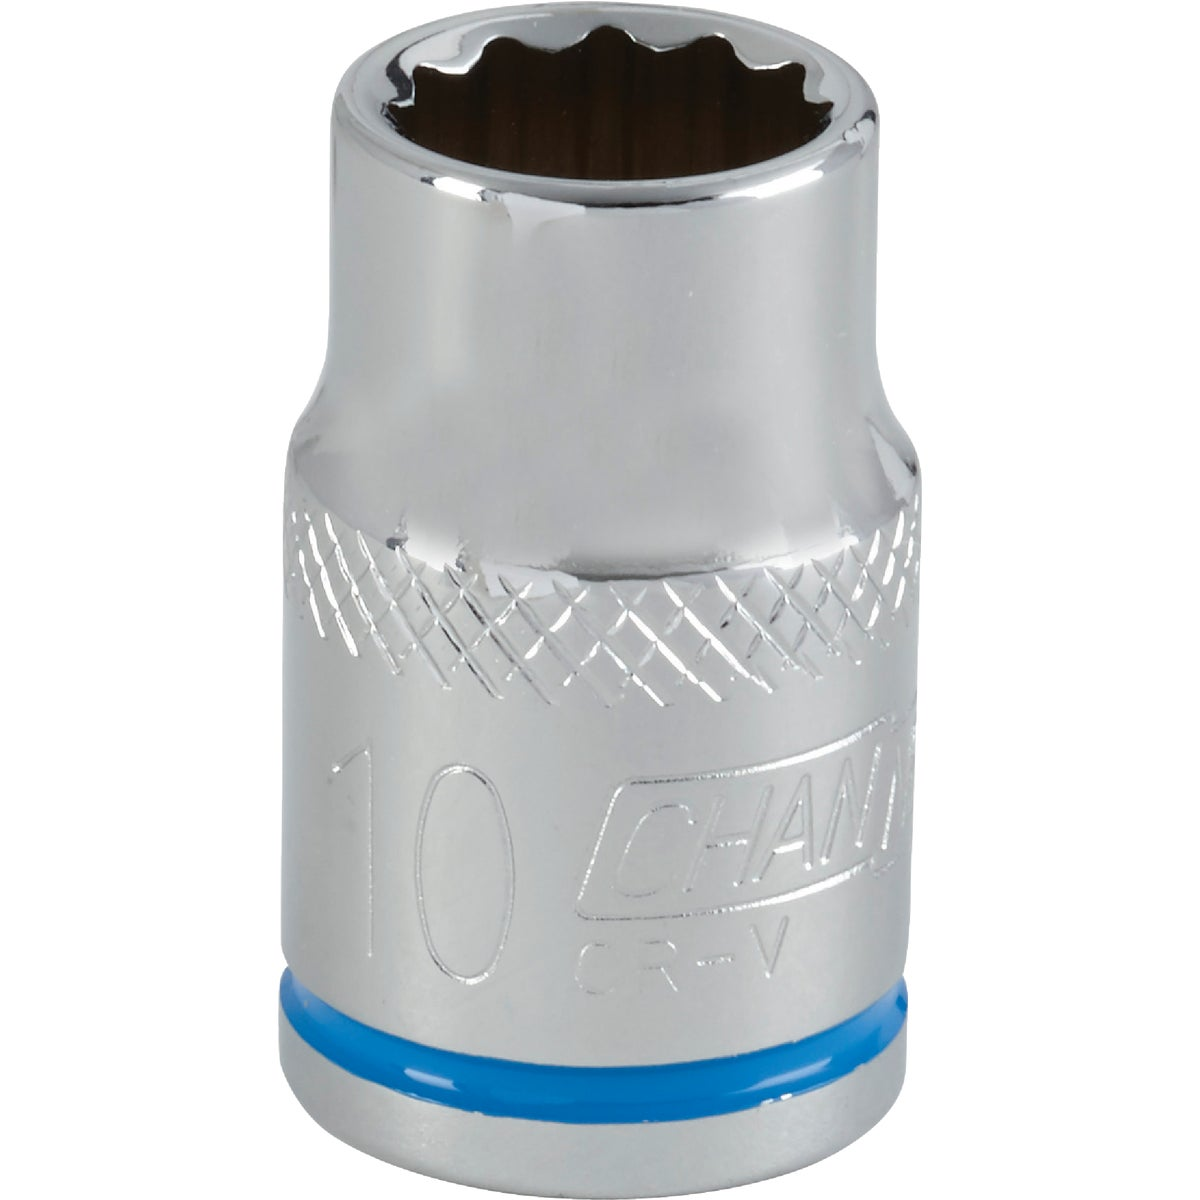 10MM 3/8 DRIVE SOCKET - 308129 by Do it Best